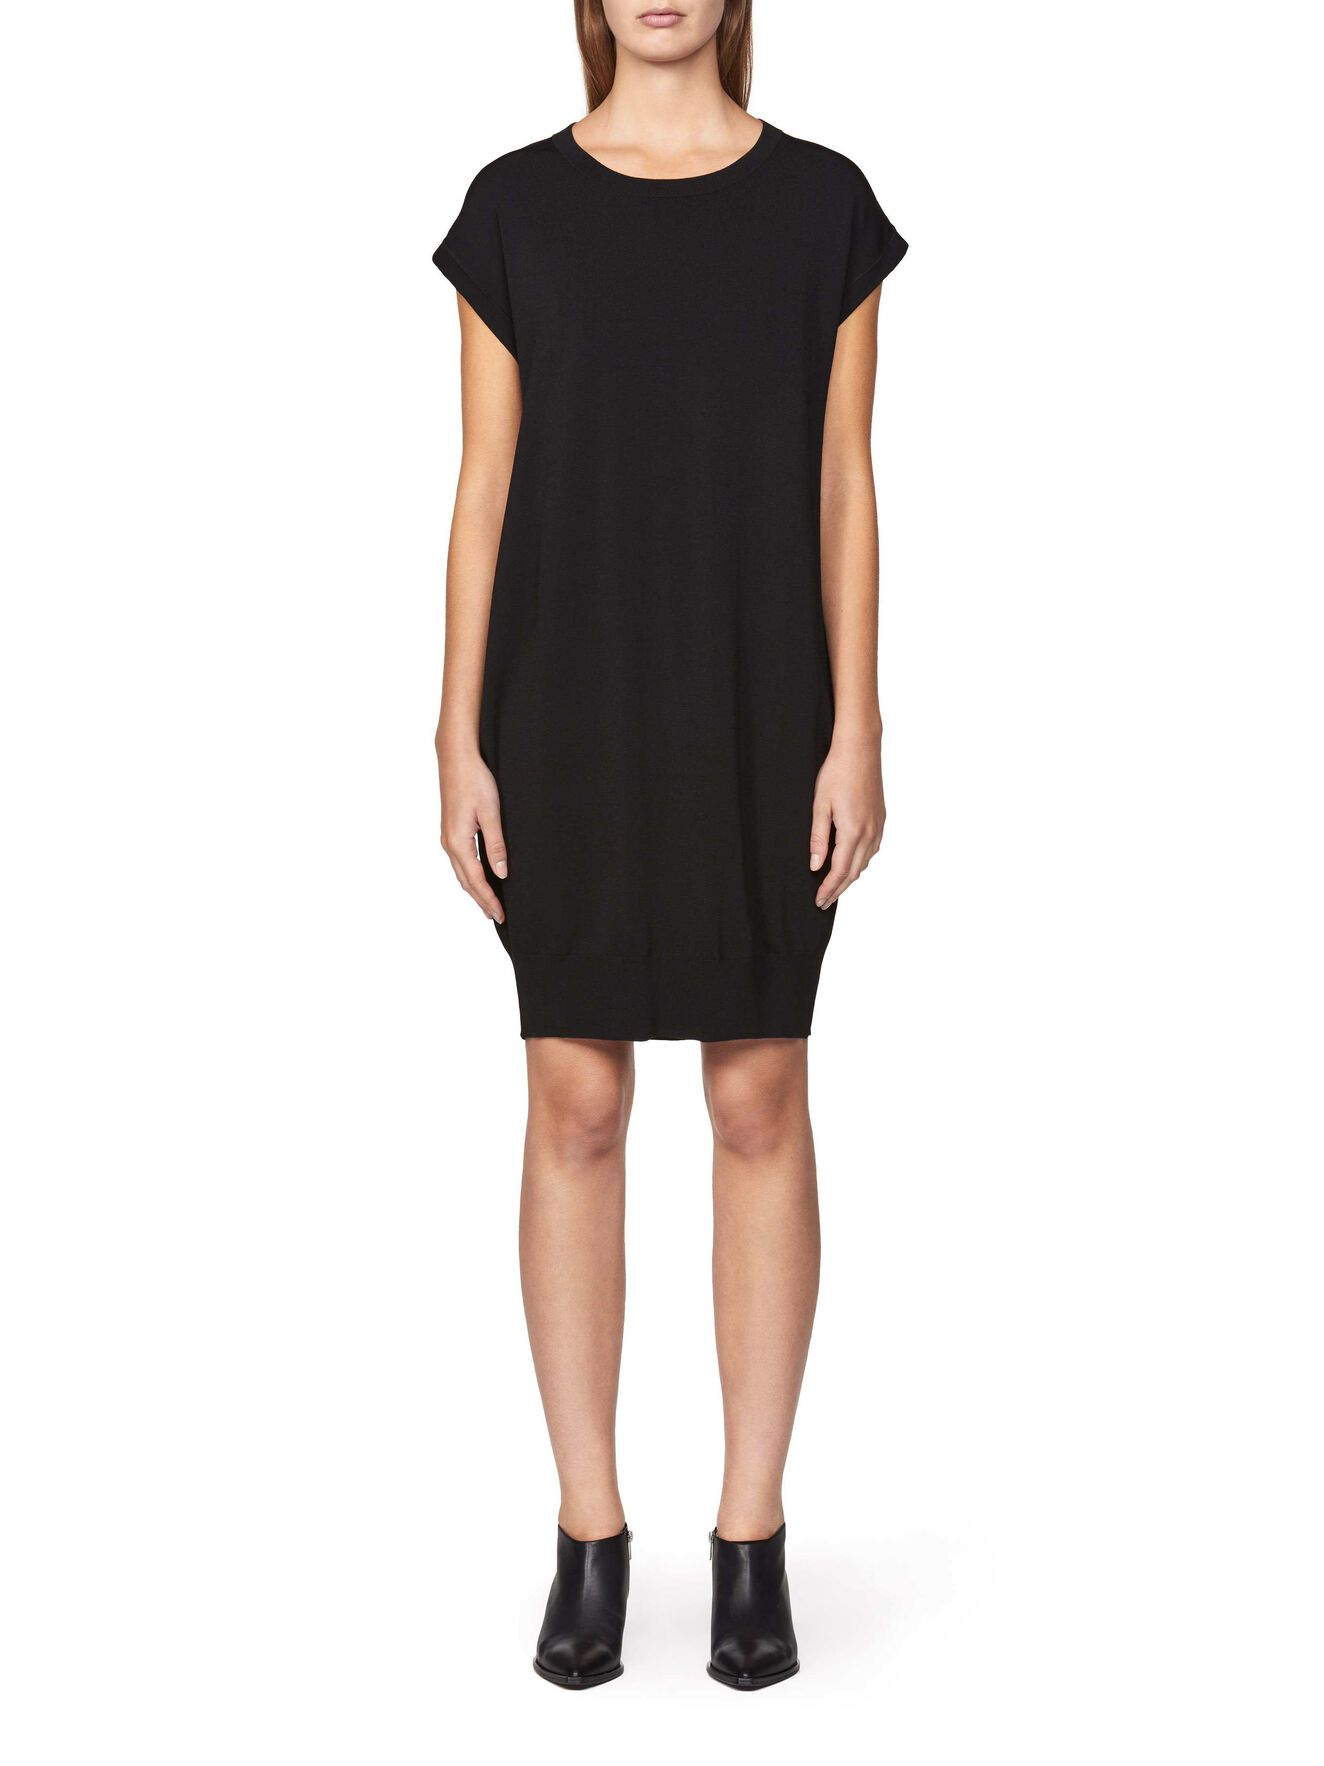 Palame Dress in Midnight Black from Tiger of Sweden